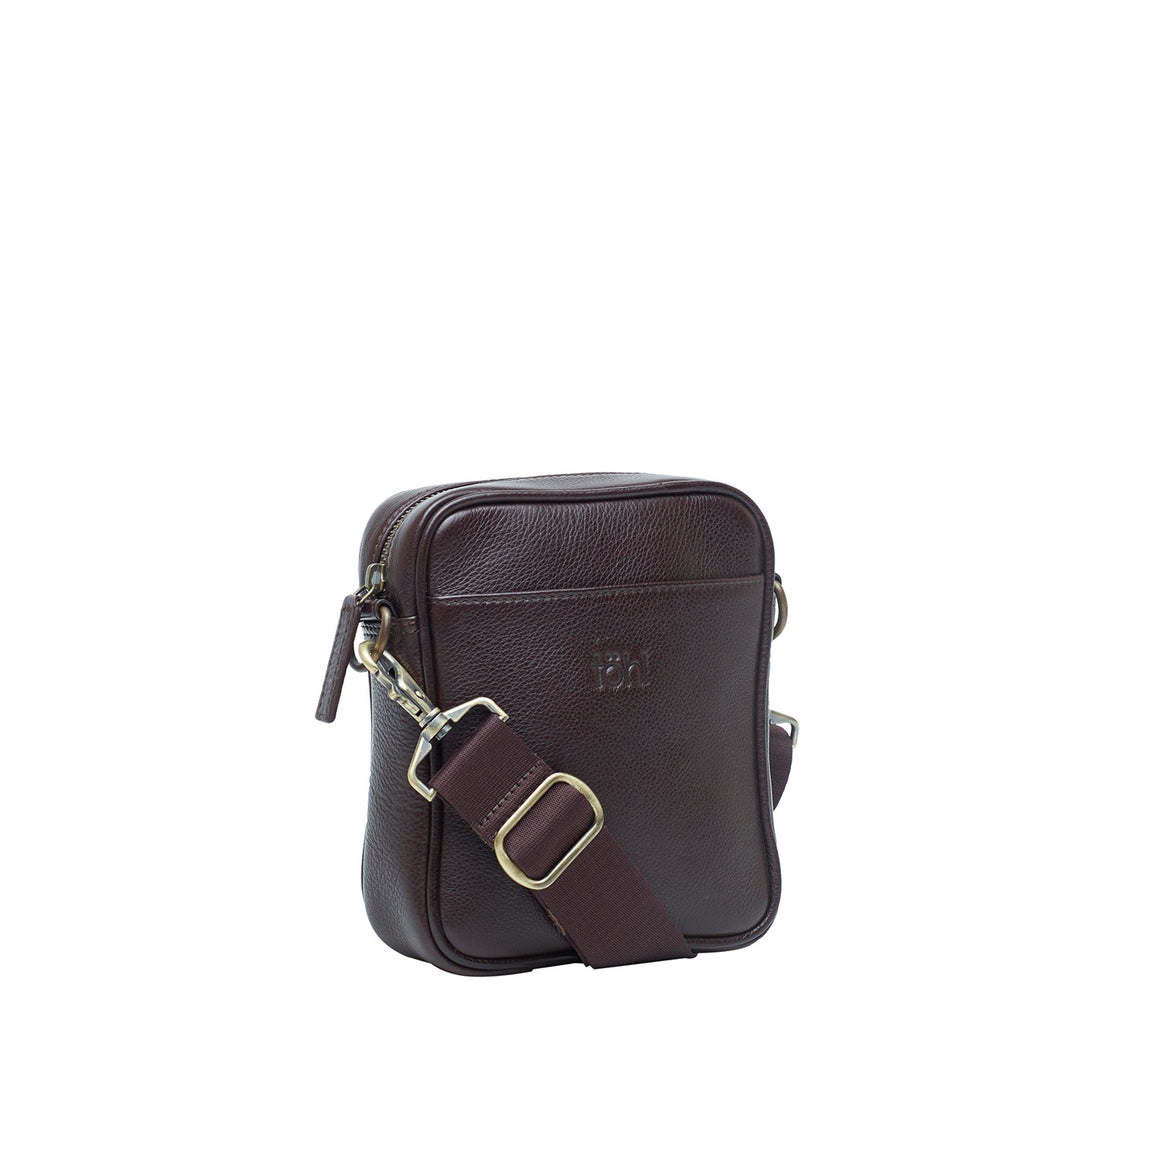 MS 0003 - TOHL CALLE MEN'S CROSSBODY & MESSENGER - T MORO